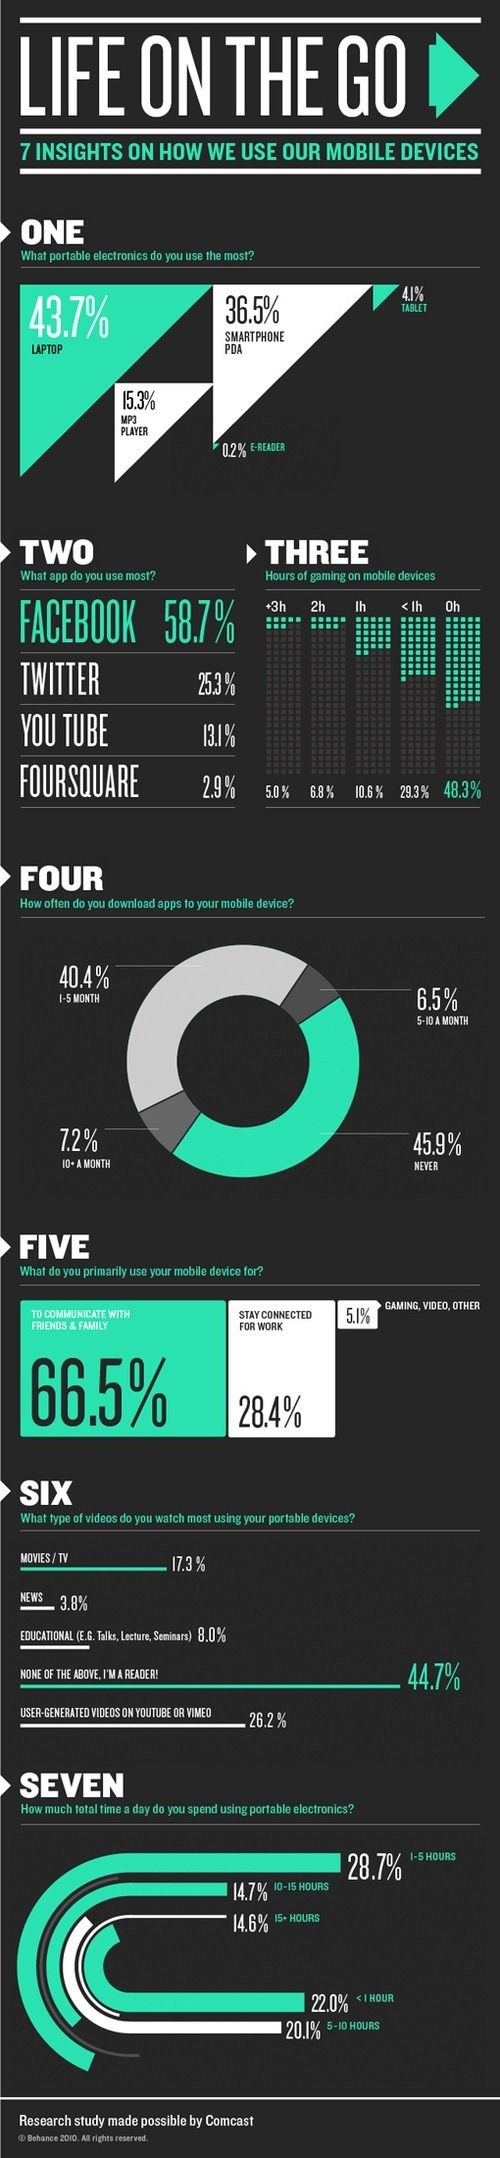 Infographic: 7 insights on how we use our mobile devices | Chris Rawlinson | Adspiration.